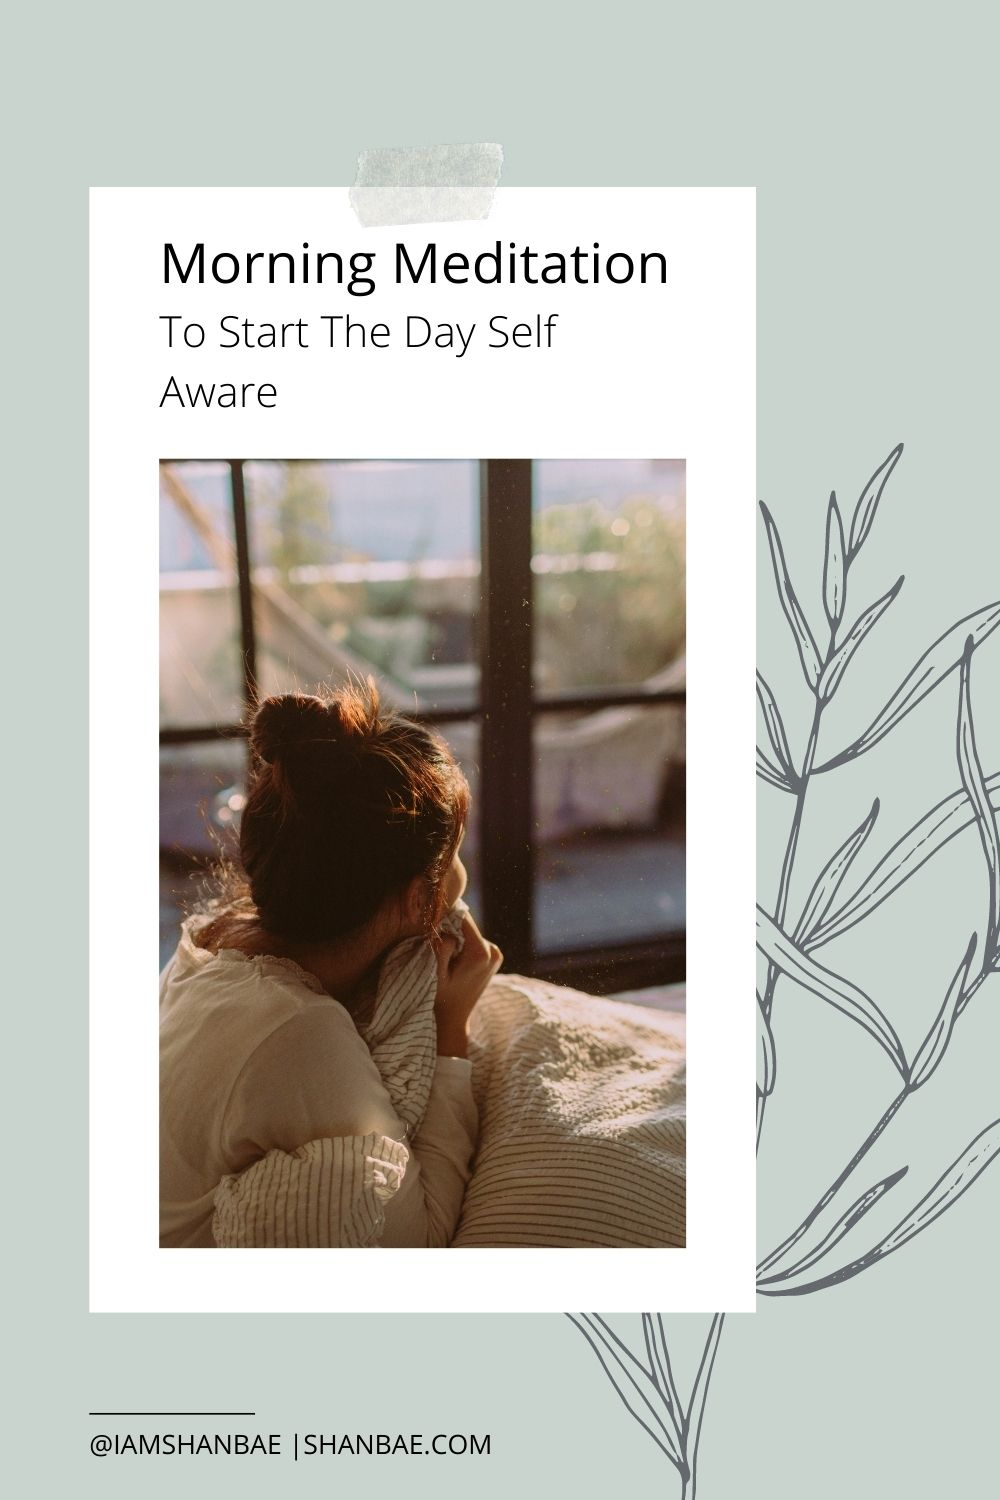 Green background with plant woman in bed staring out the window with morning meditation title above